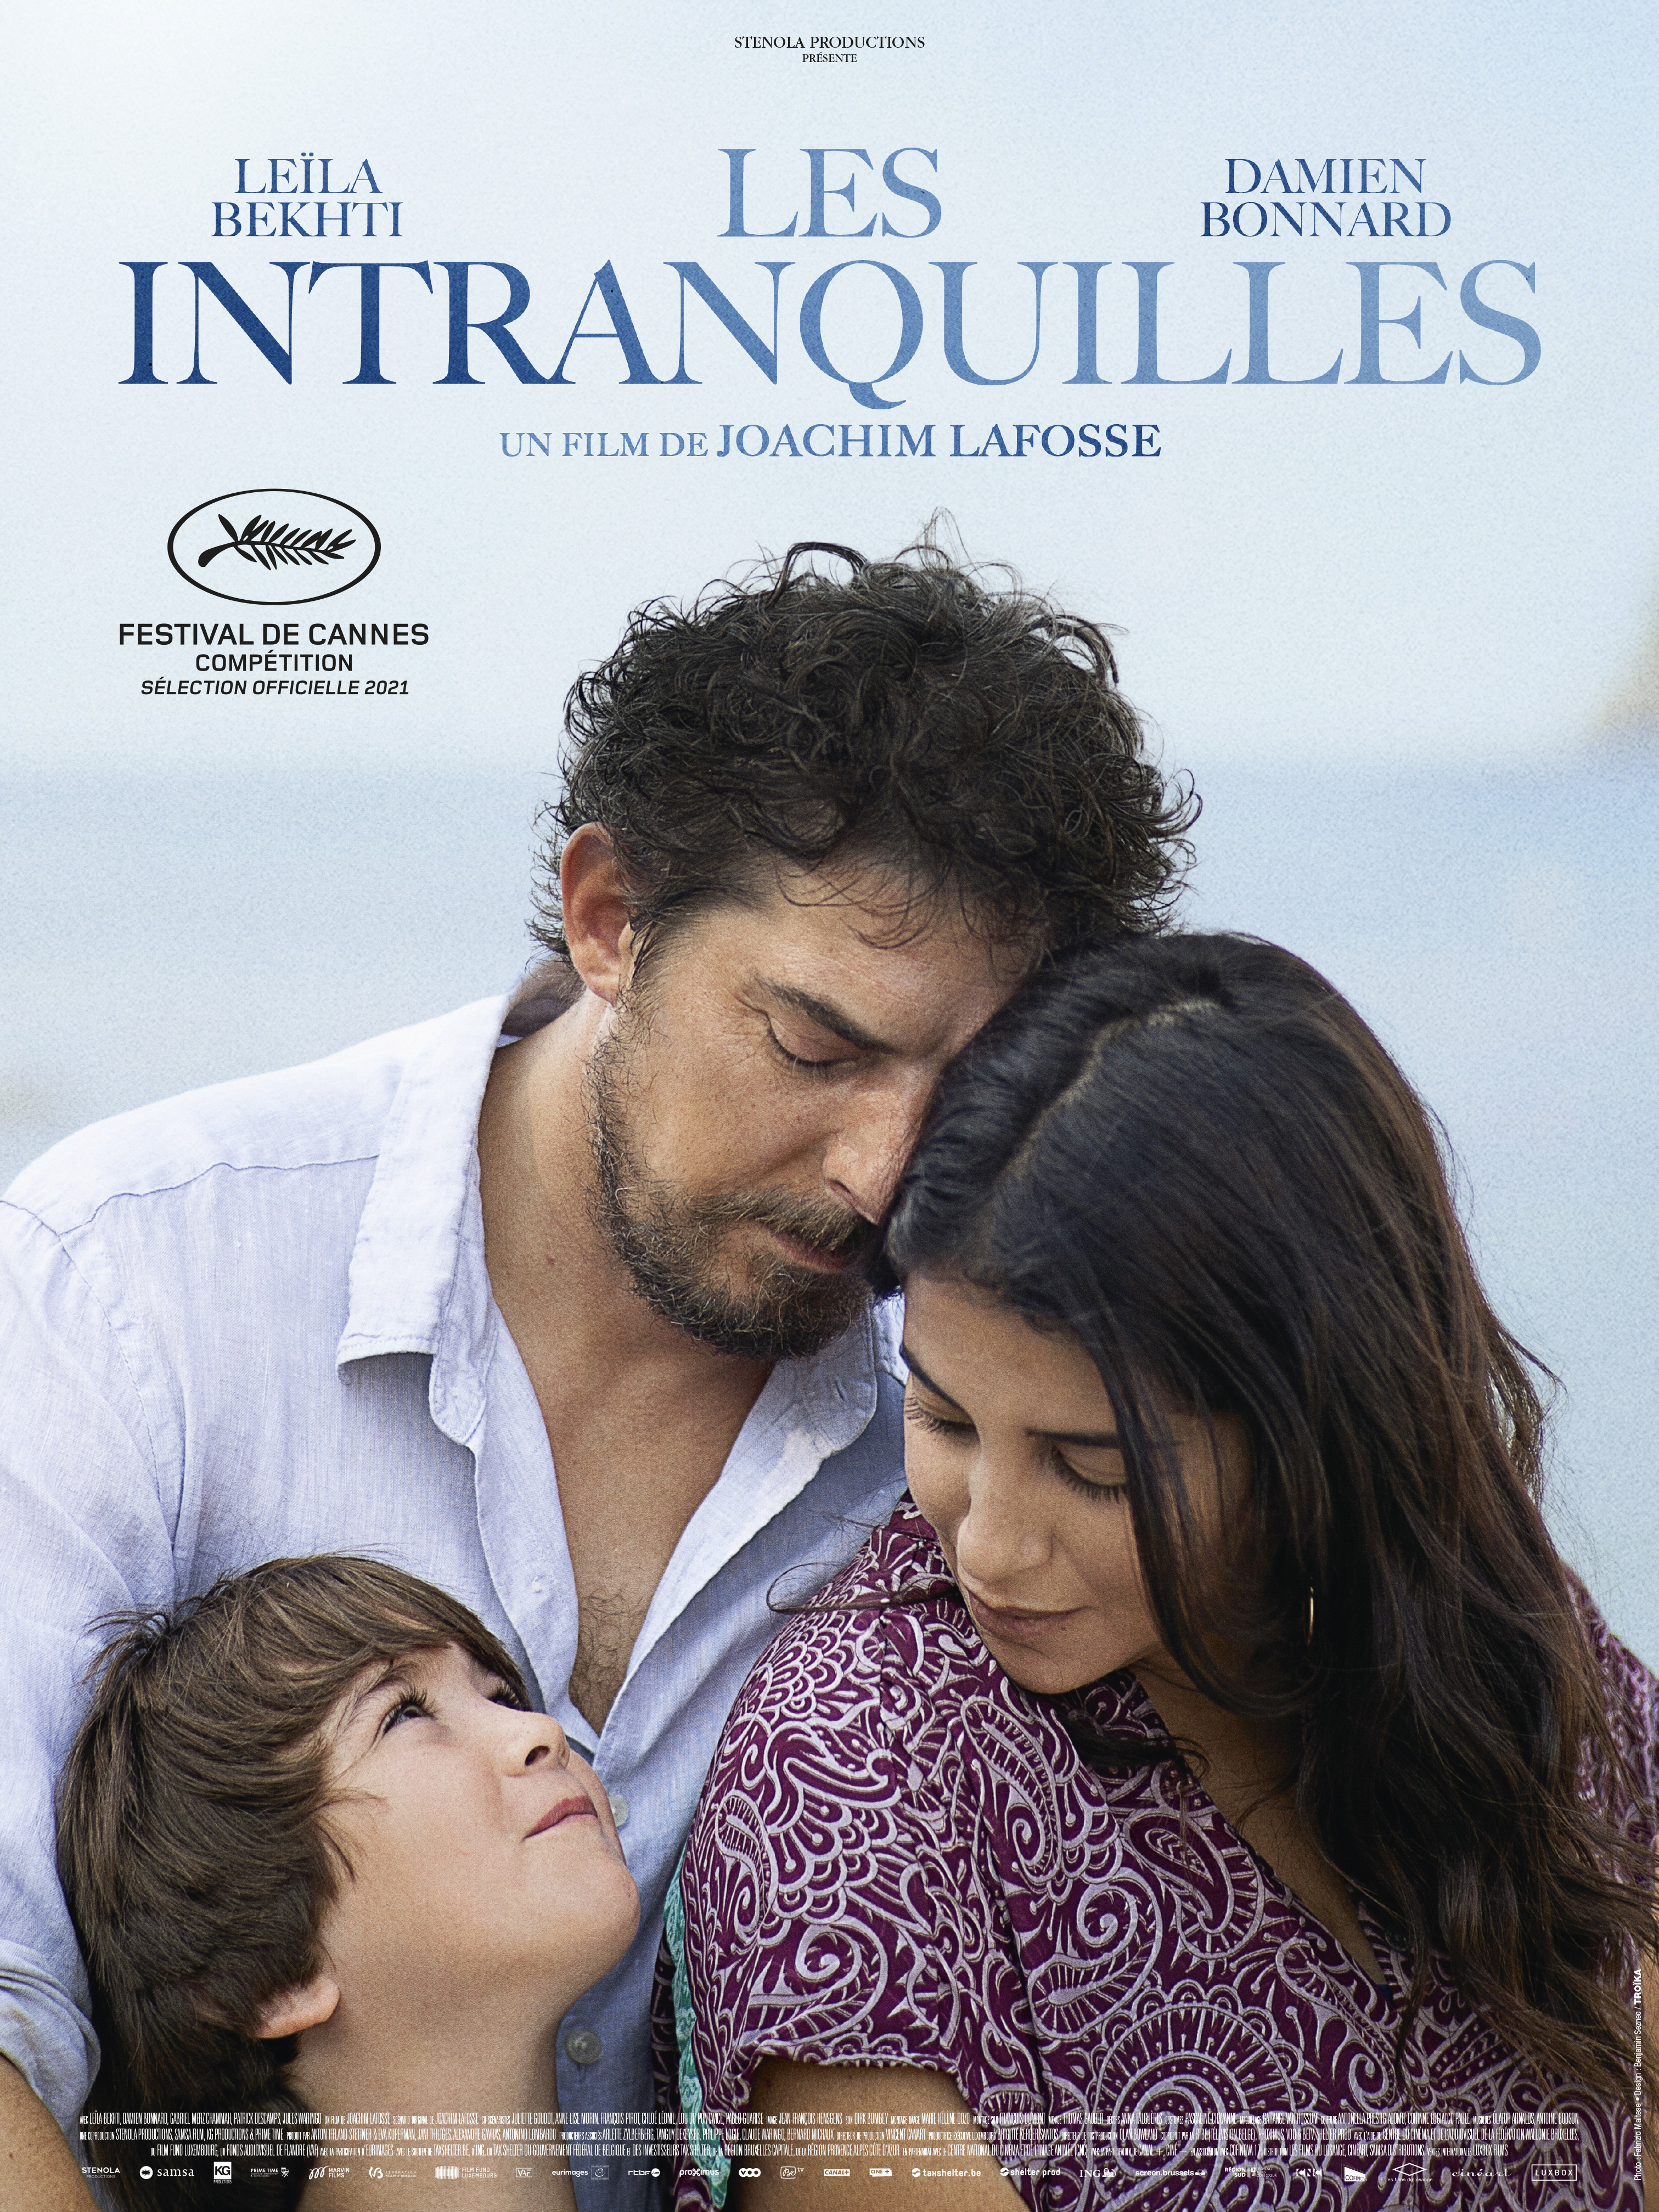 Les intranquilles (2020) Hindi (Voice Over) Dubbed+ French [Dual Audio] CAMRip 720p [1XBET]